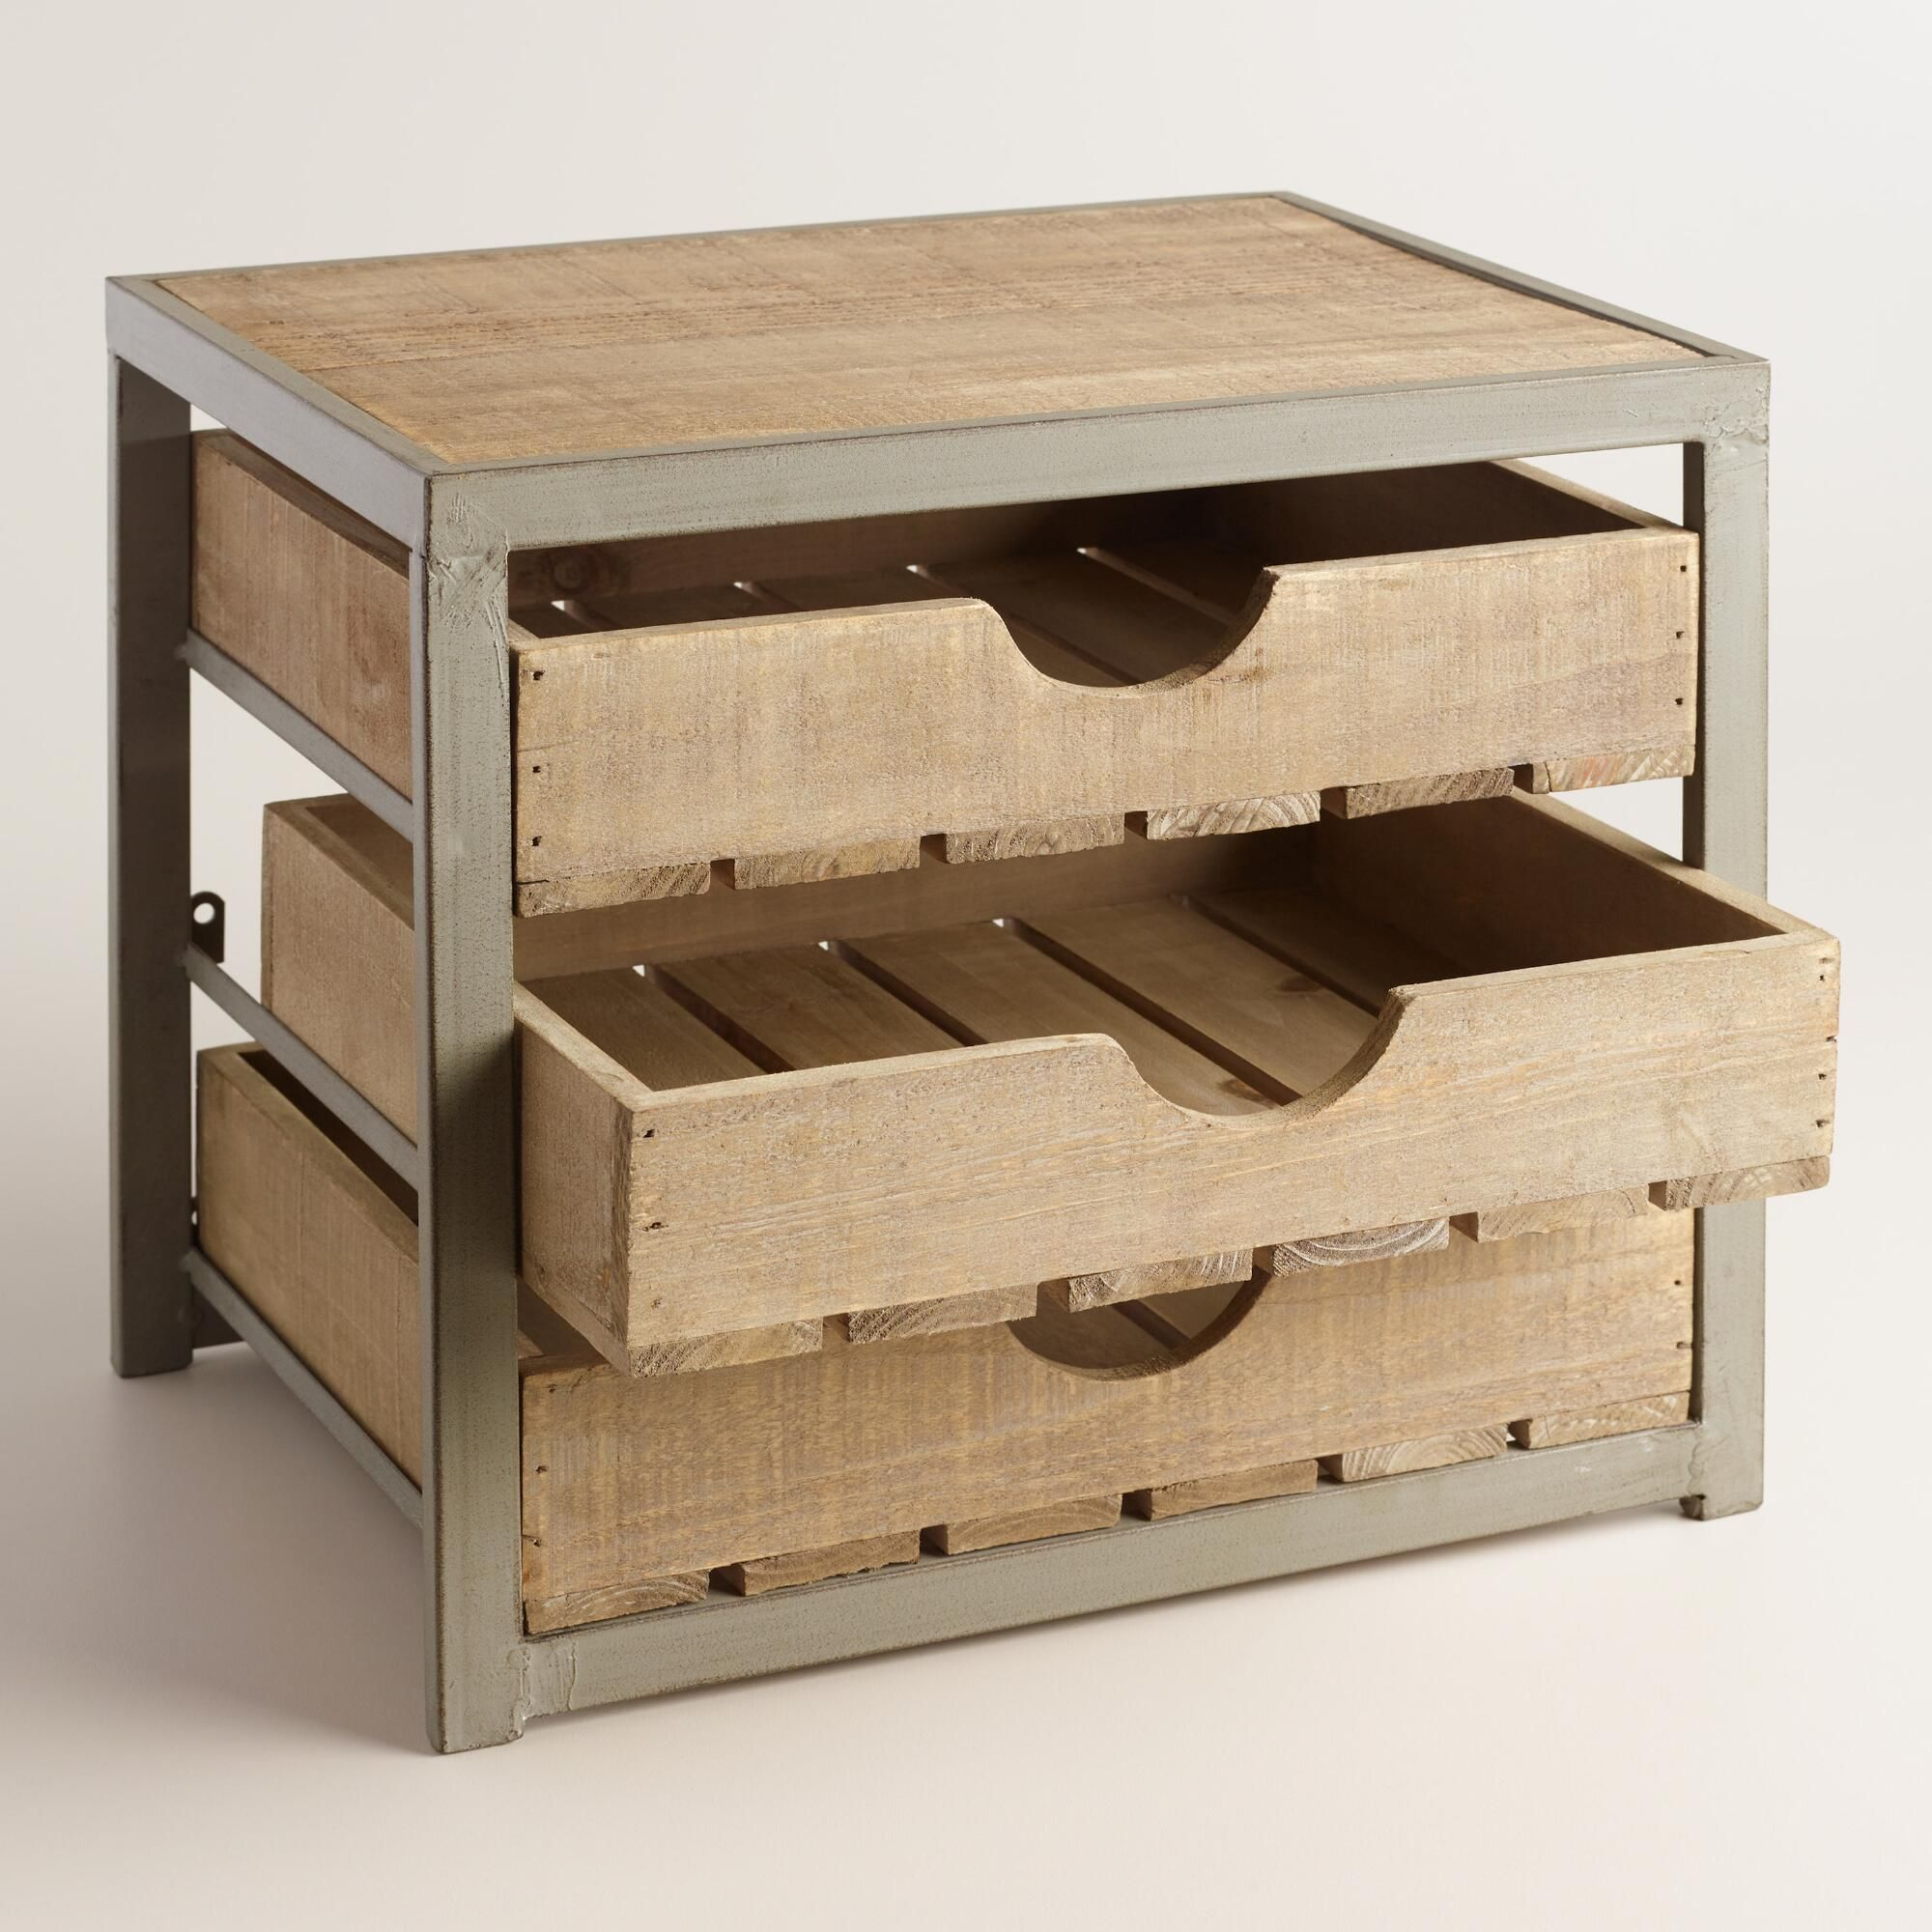 Desk Top Drawers Give Your Desktop Storage A Rustic Appeal With Our Apple Crate